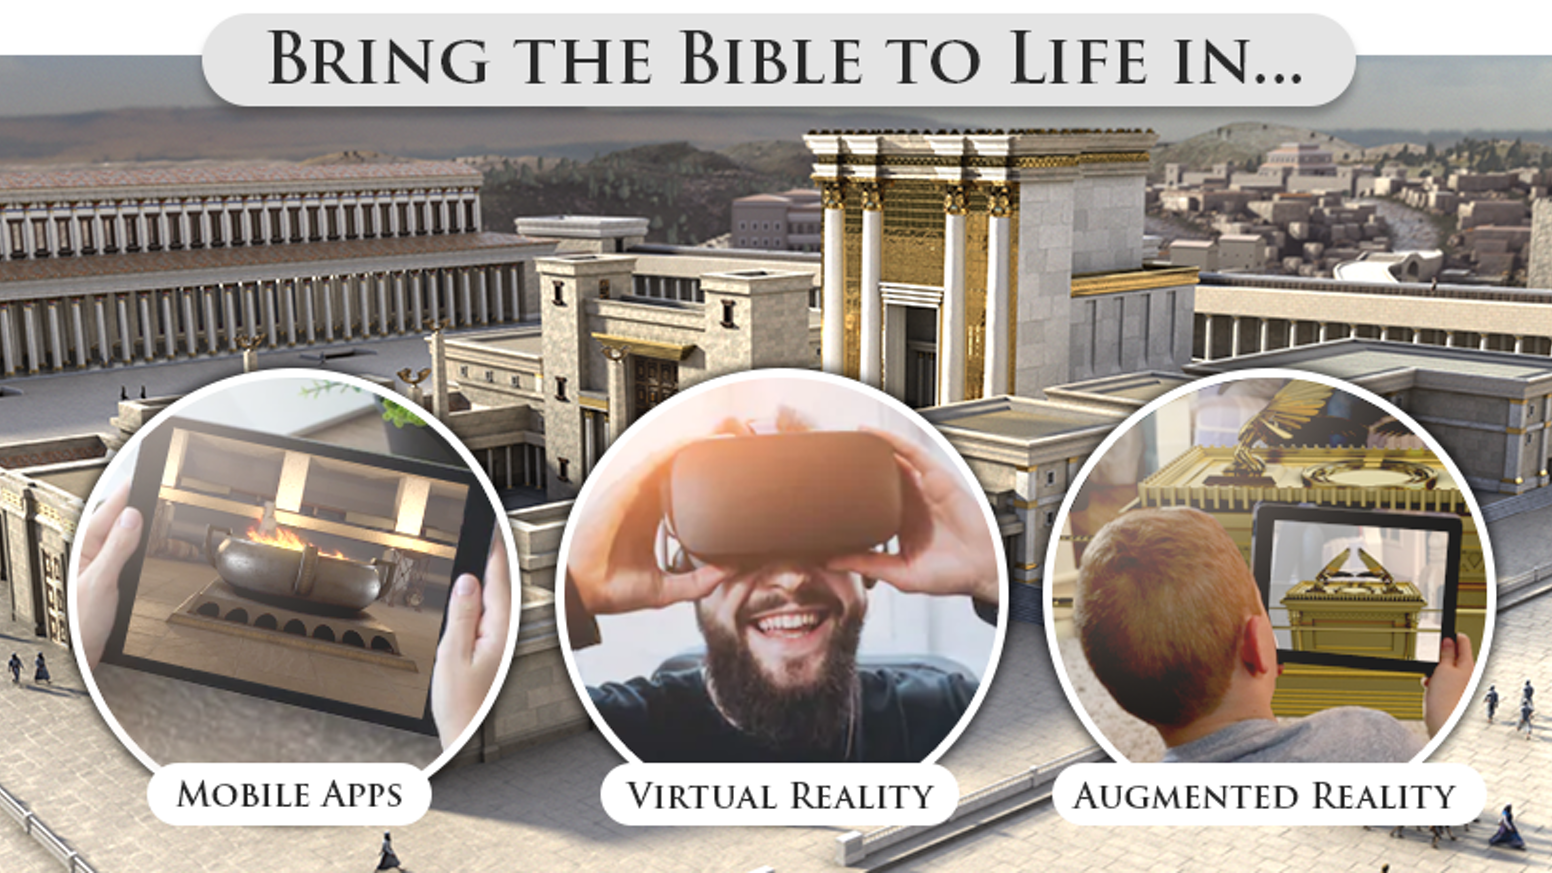 Bringing the Bible to life in Virtual Reality and a suite of in-depth Mobile Apps including Mobile 3D, Augmented Reality, and Mobile VR